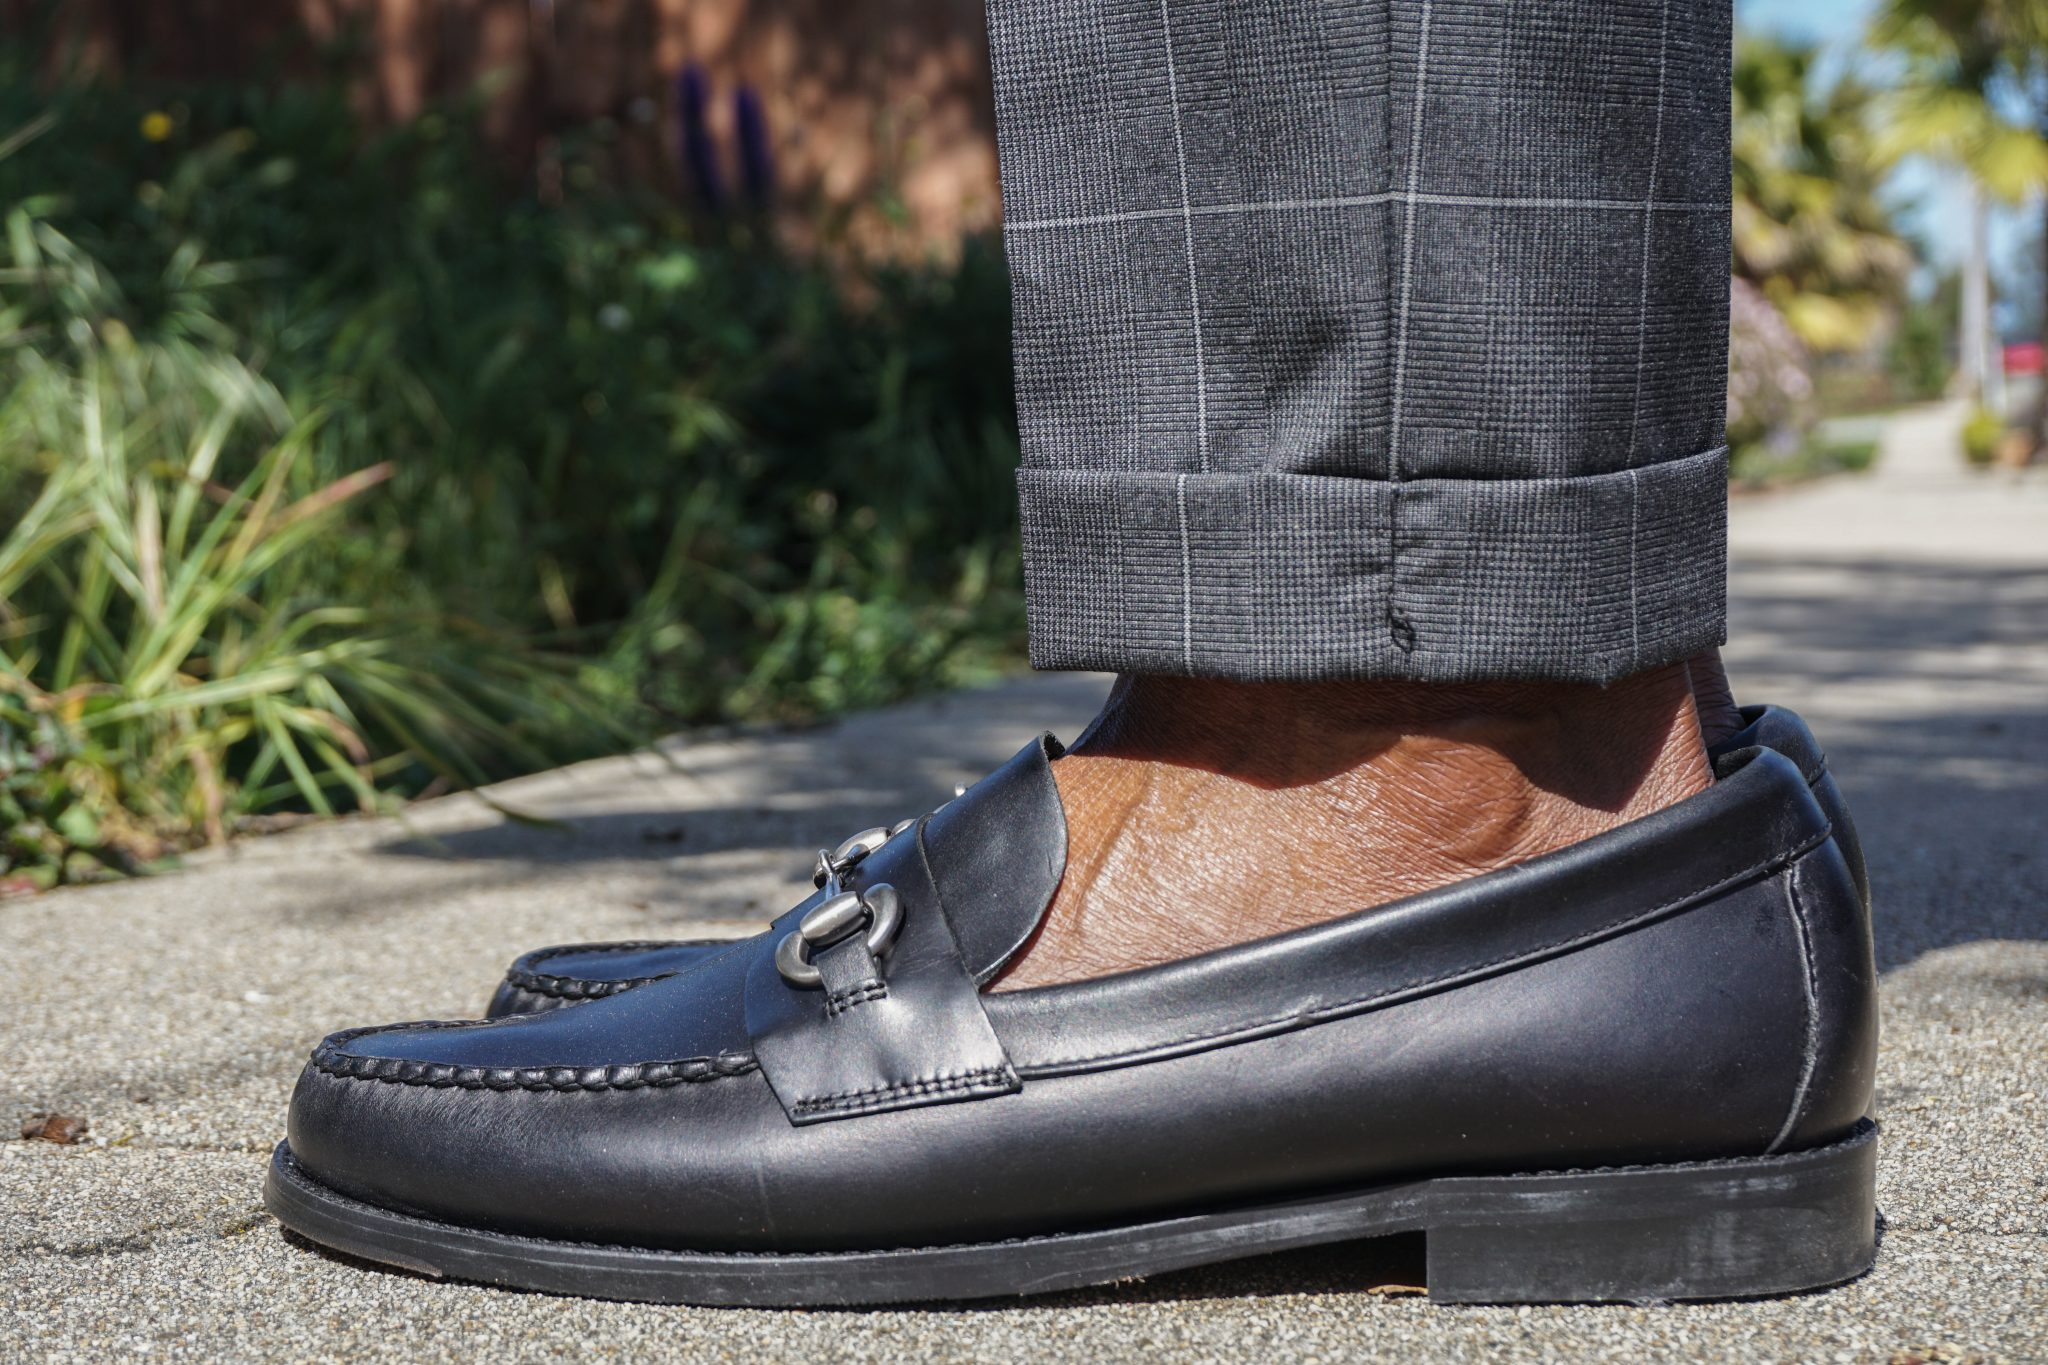 dapper-advisor-black-horsebit loafers-no show socks-grey windowpane-trousers